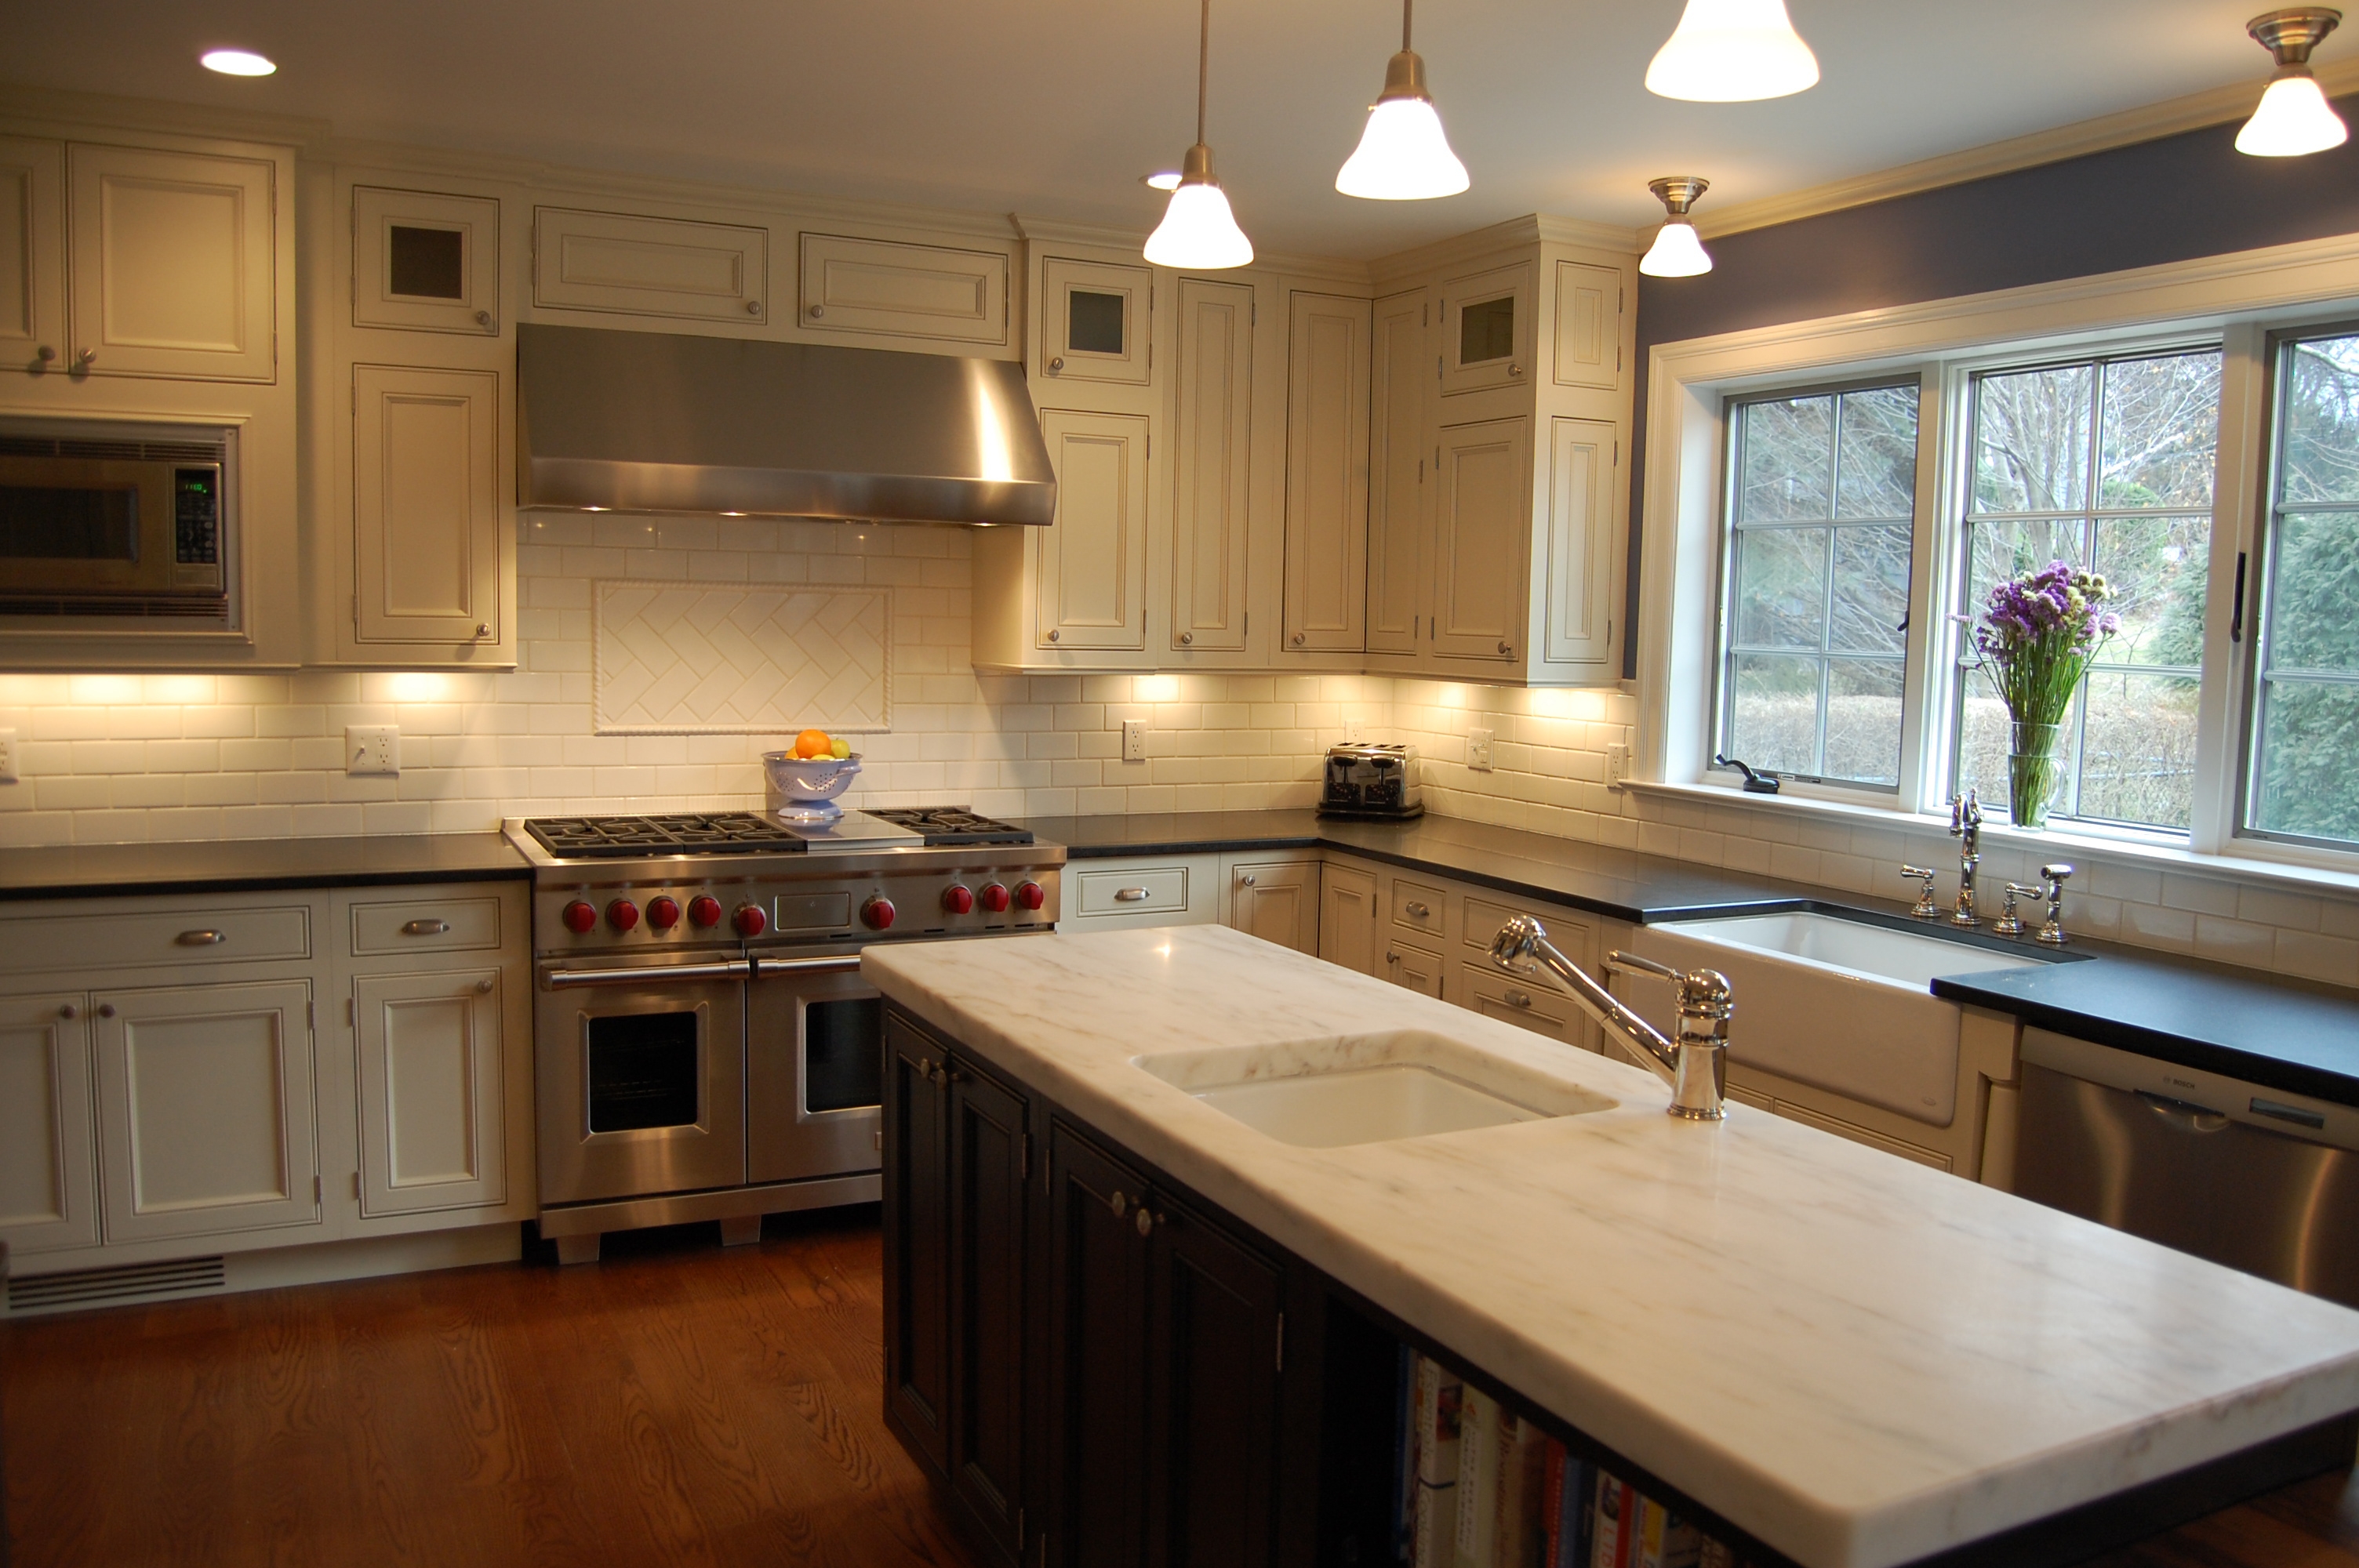 Kitchens by frankie larchmont ny 10538 angies list for Kitchen cabinets yorktown ny